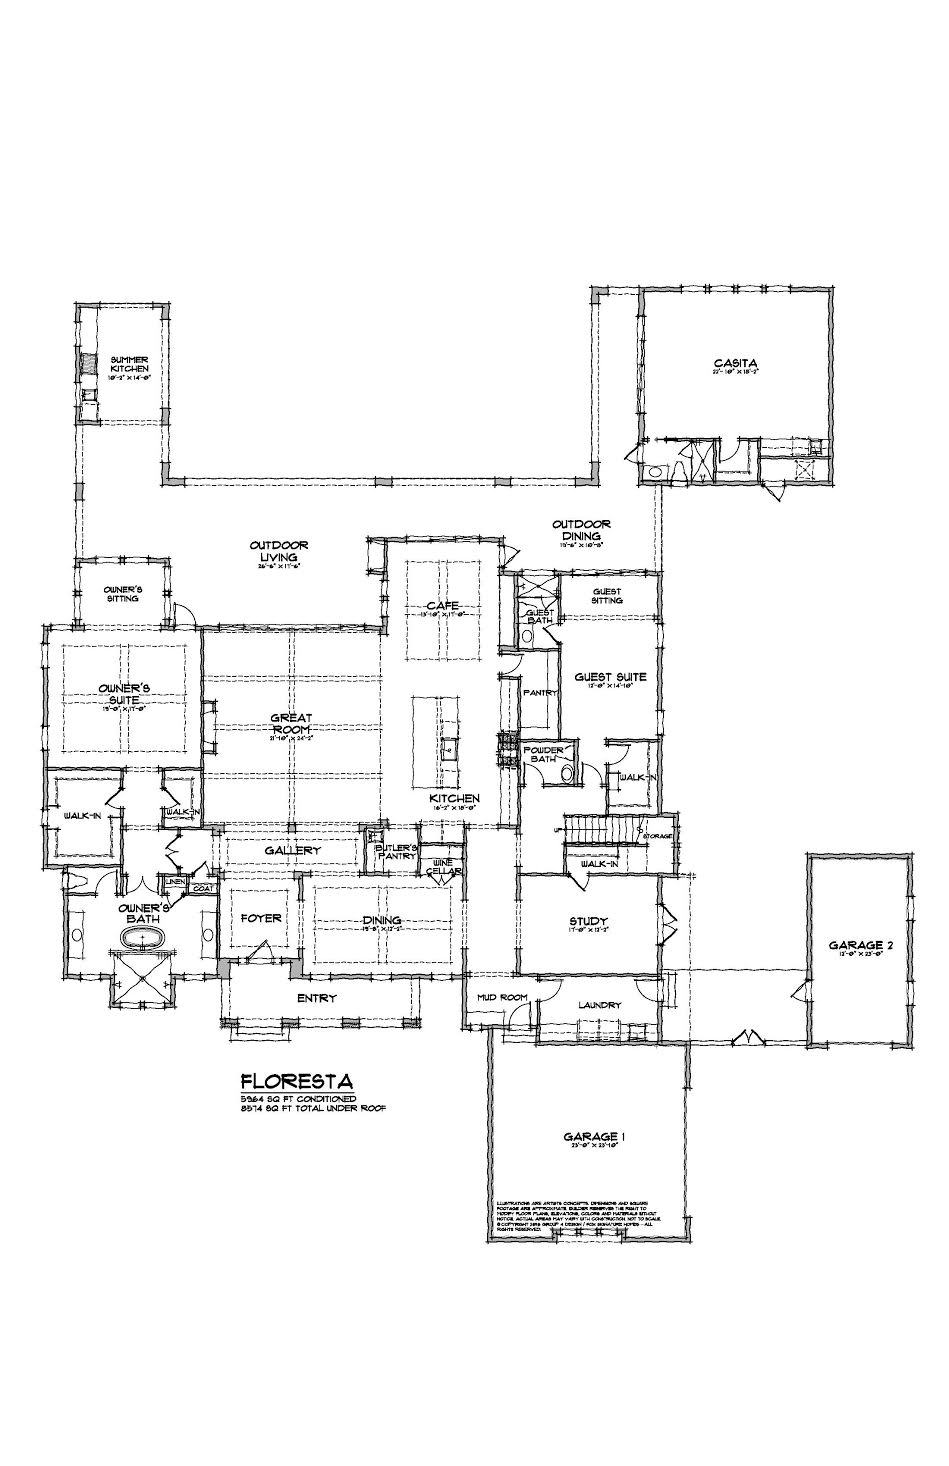 Floresta Floorplan 1st floor.jpg